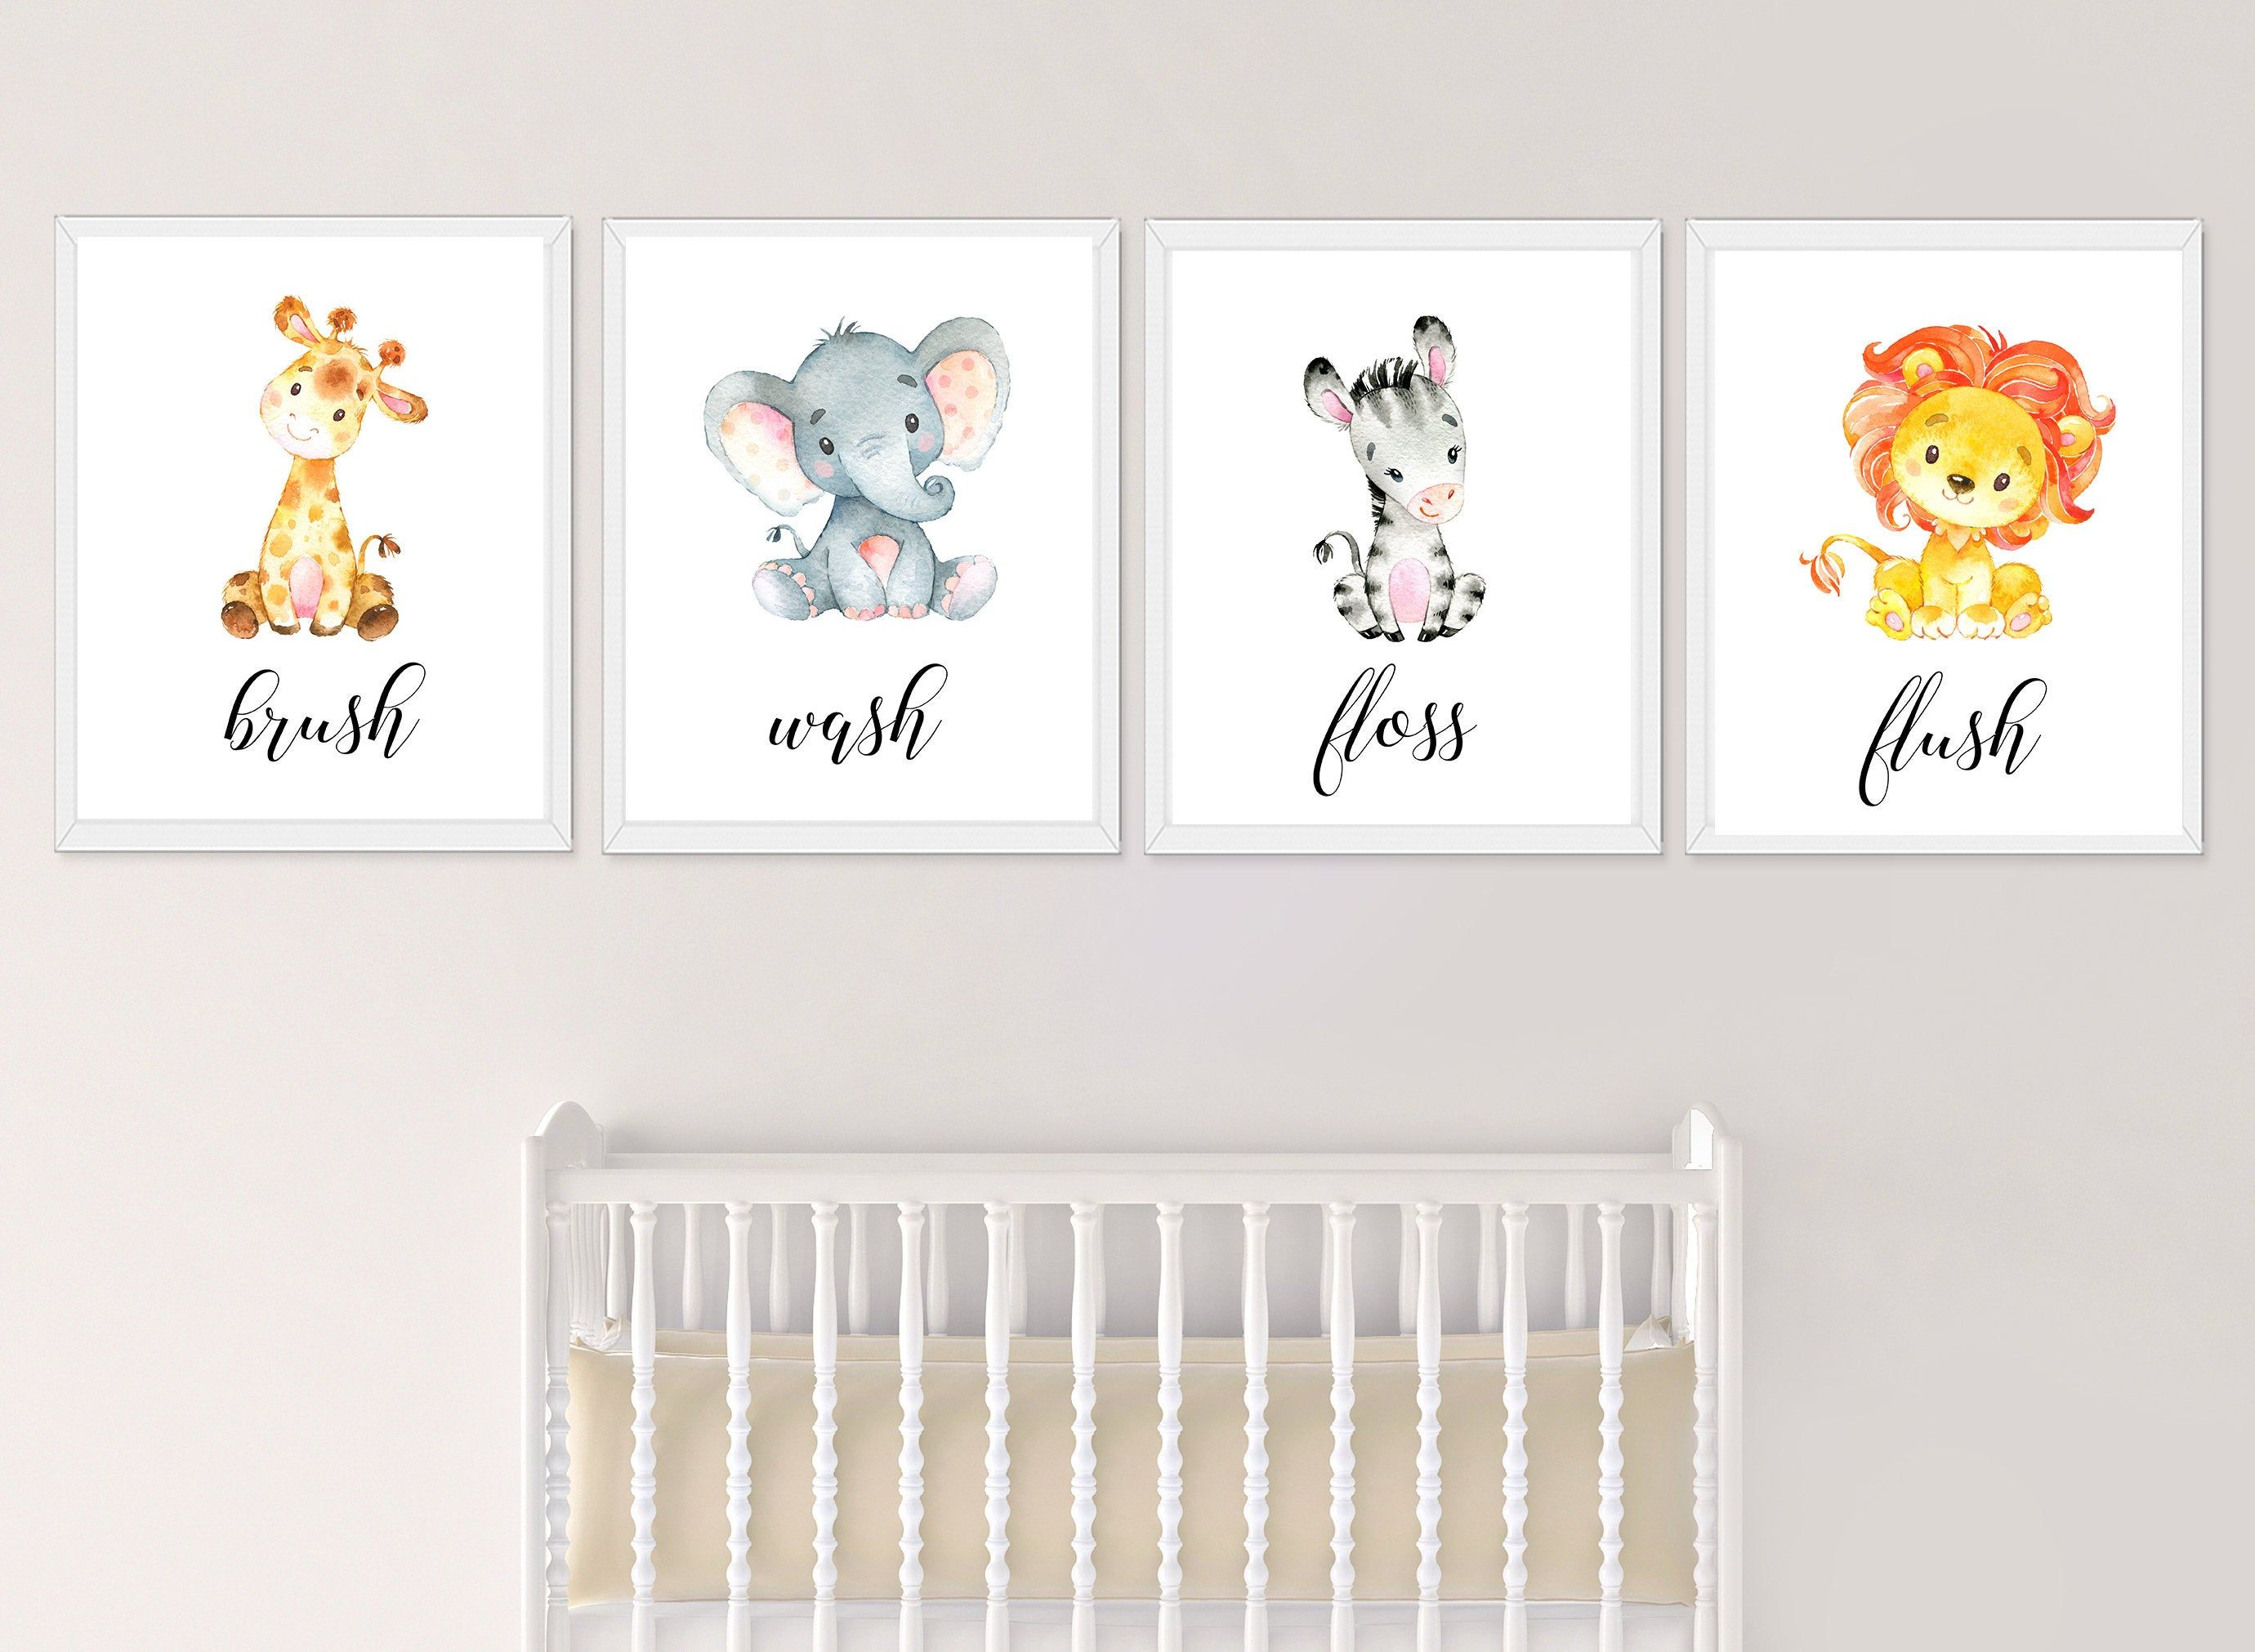 Kids Bathroom Safari Wall Art Safari Bathroom Prints Bathroom Rules For Kids Elephant Bathro Kids Bathroom Wall Kids Bathroom Wall Decor Kids Bathroom Wall Art